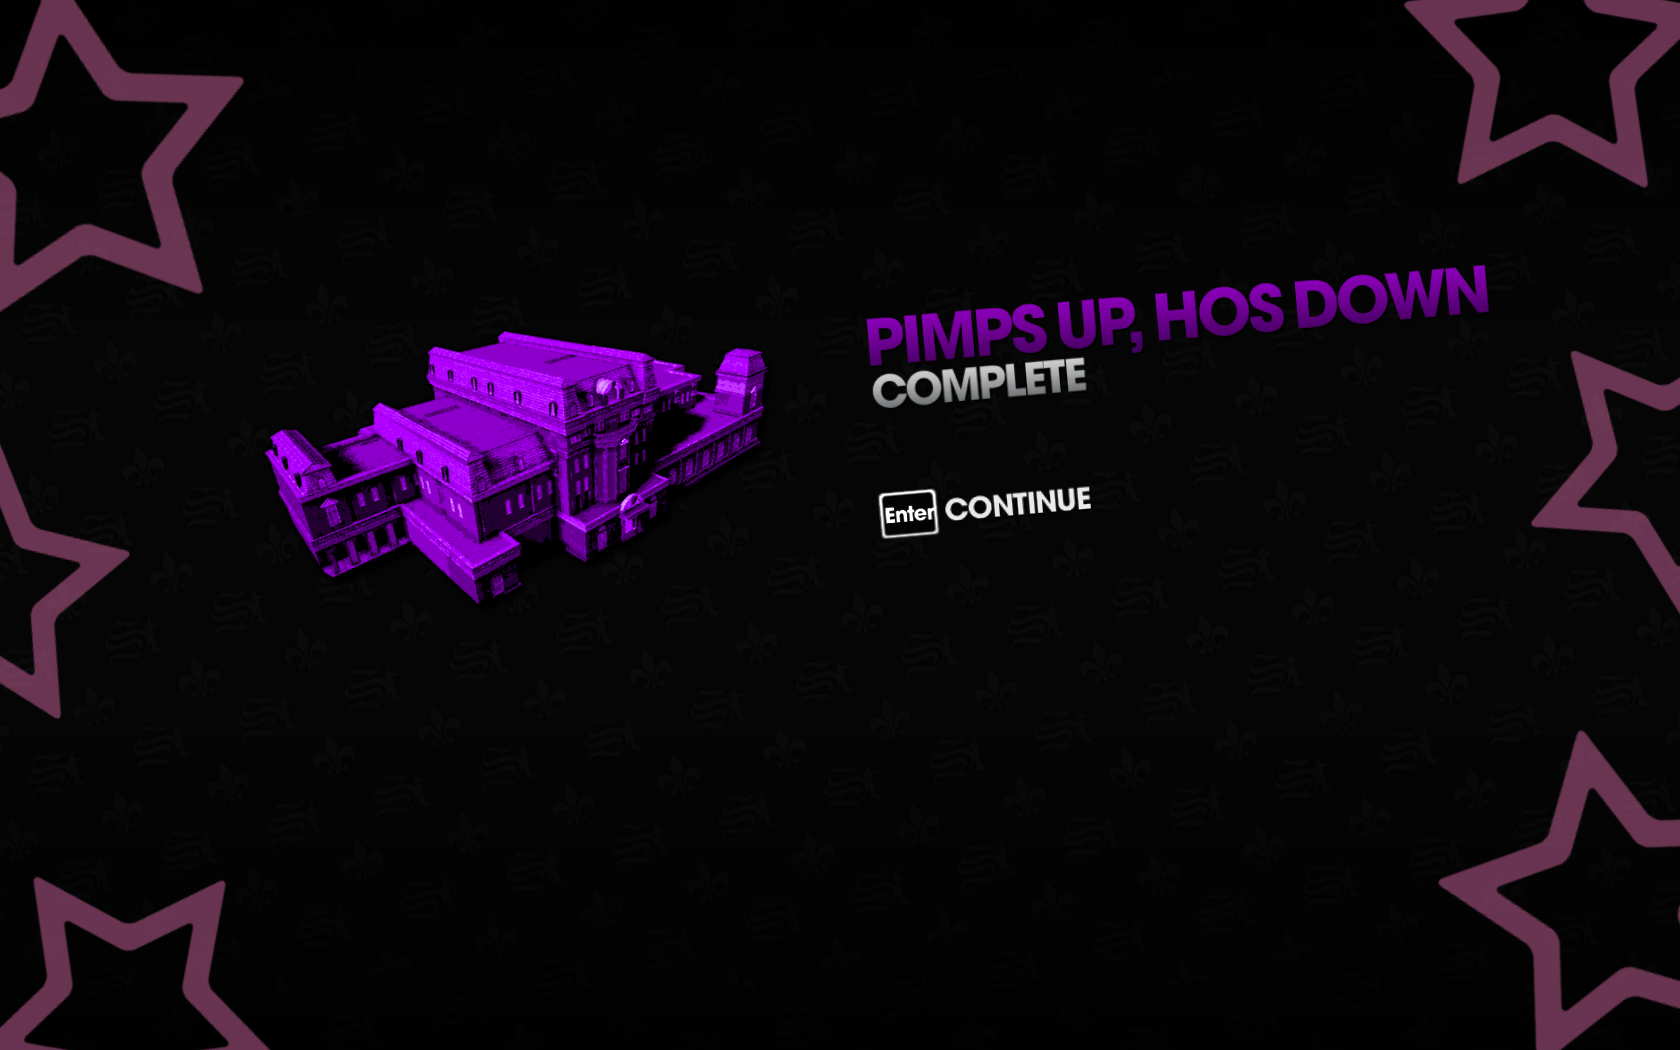 pimps up ho Pimps up, hos down - saints row 3: this mission becomes available after you complete face your fear, phone phreak, painting a picture, and trojan whores.